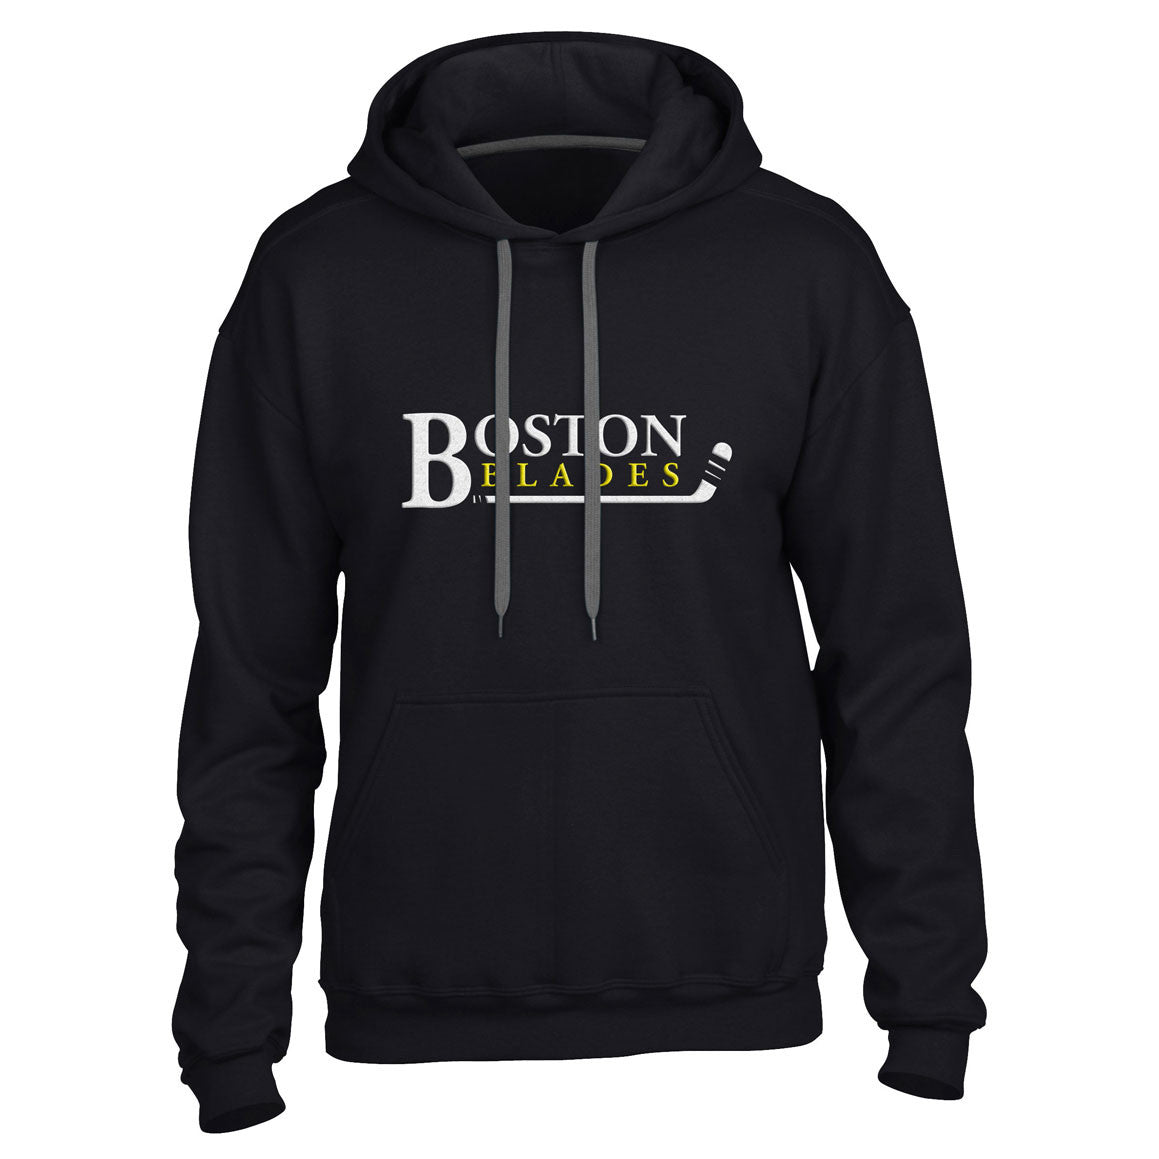 Boston Blades Men's Black Pullover Hoody - shop.realsports